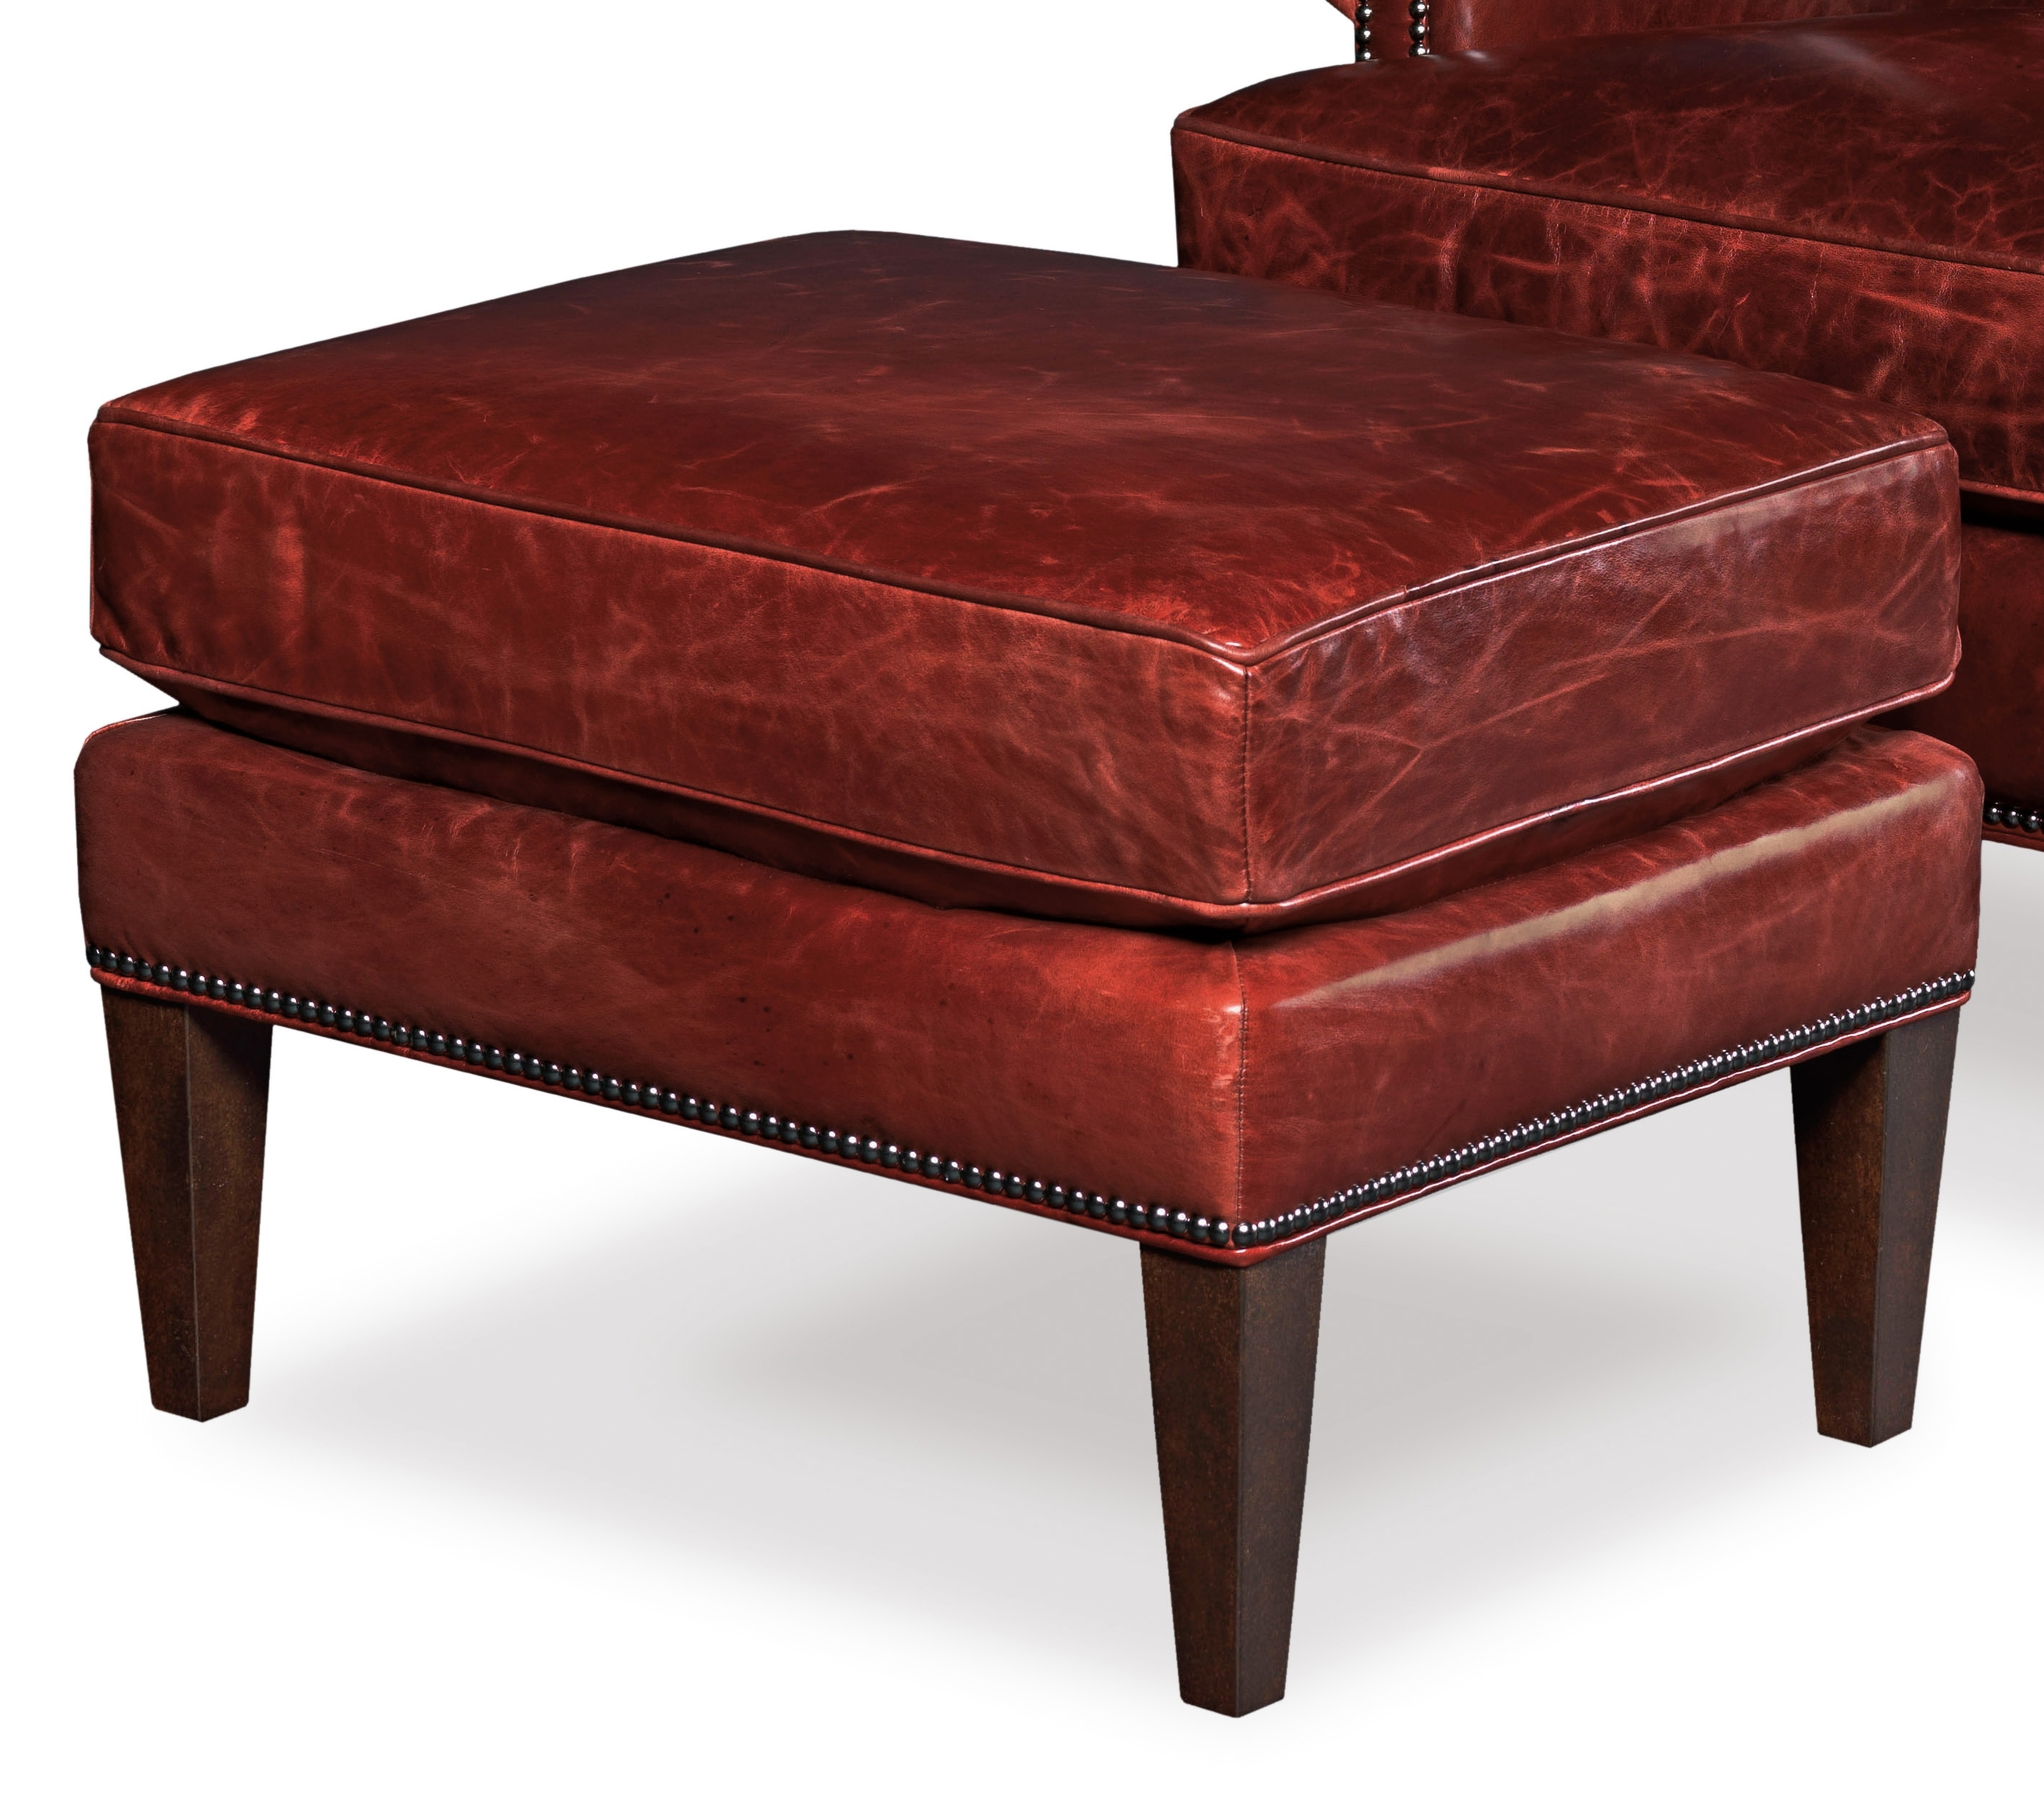 Hooker Furniture Club Chairs Ottoman With Nailhead Trim – Olinde's With Regard To Favorite Chairs With Ottoman (View 10 of 20)